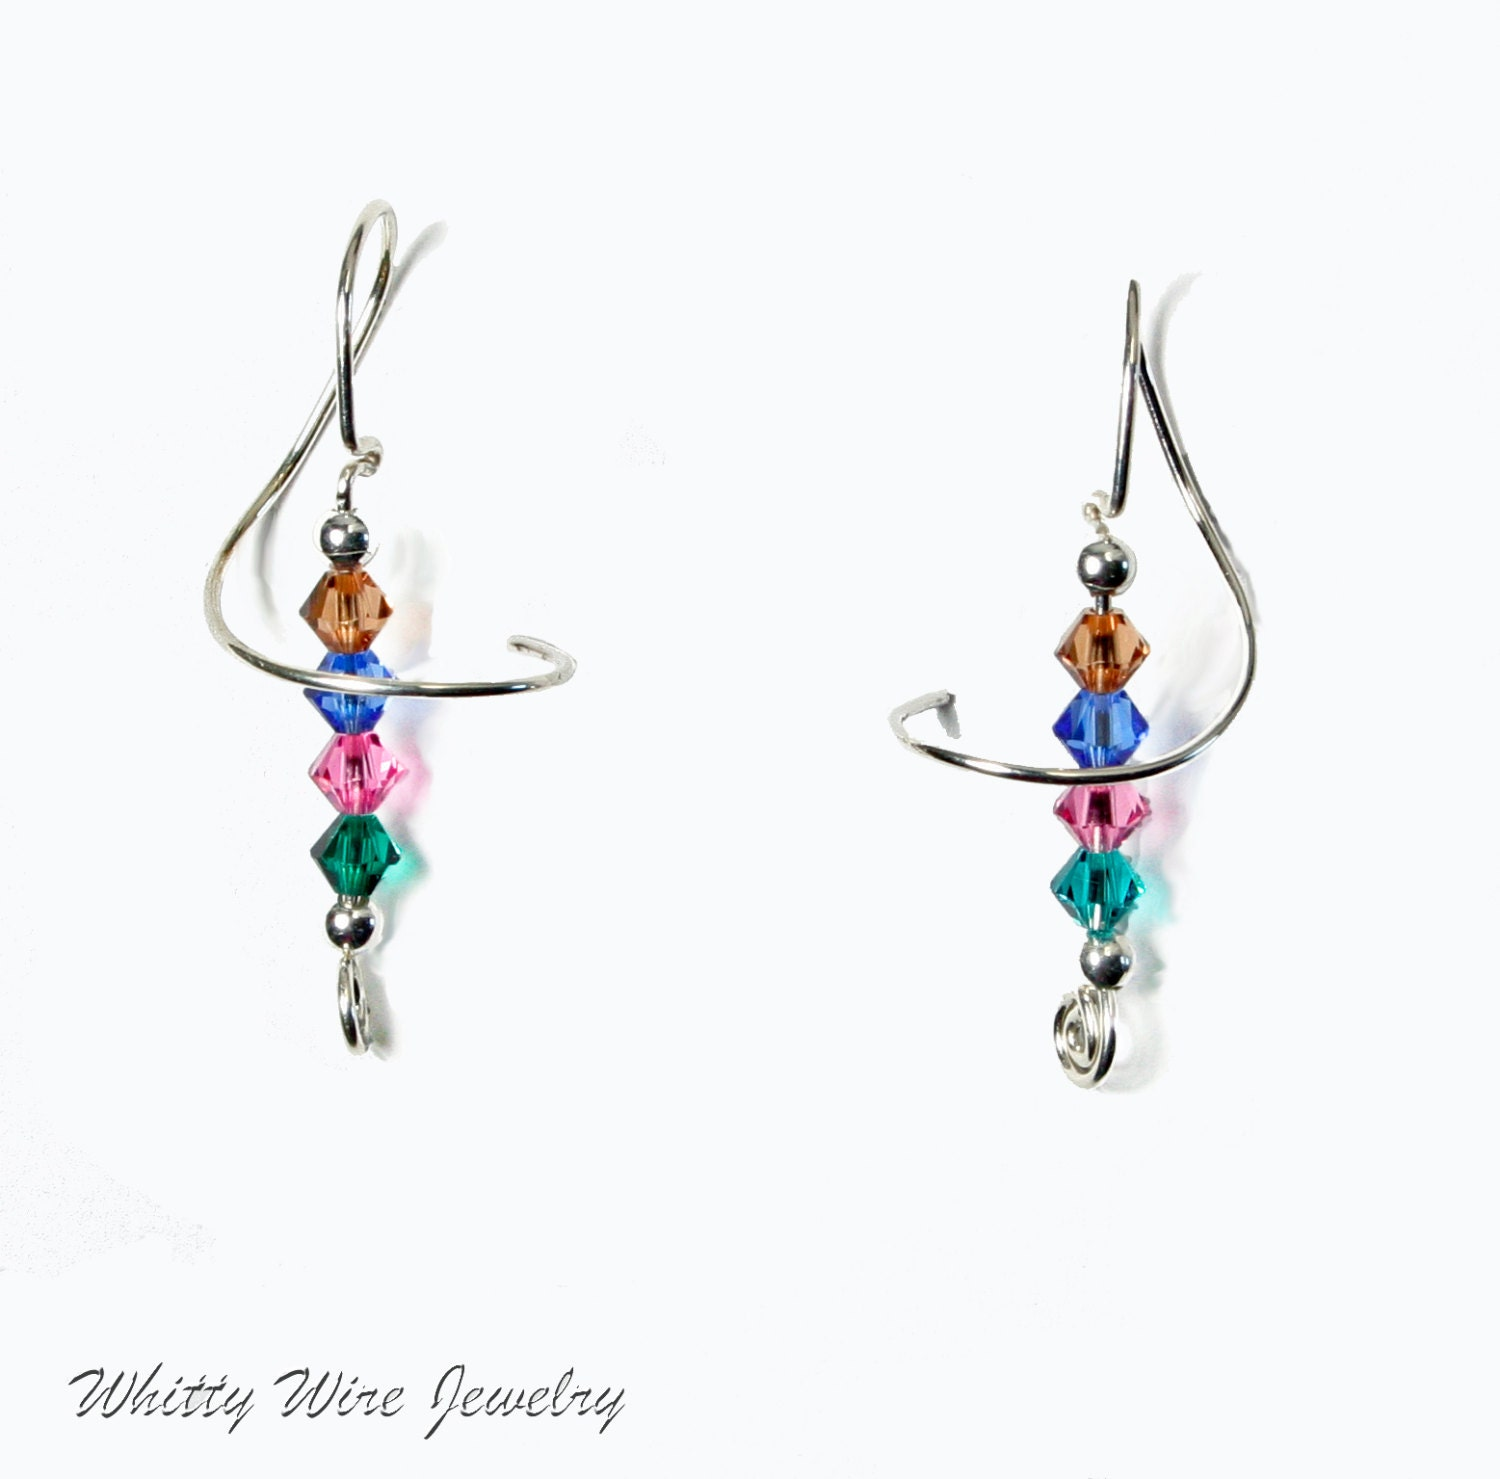 sterling silver swirl pierced earrings with multicolored